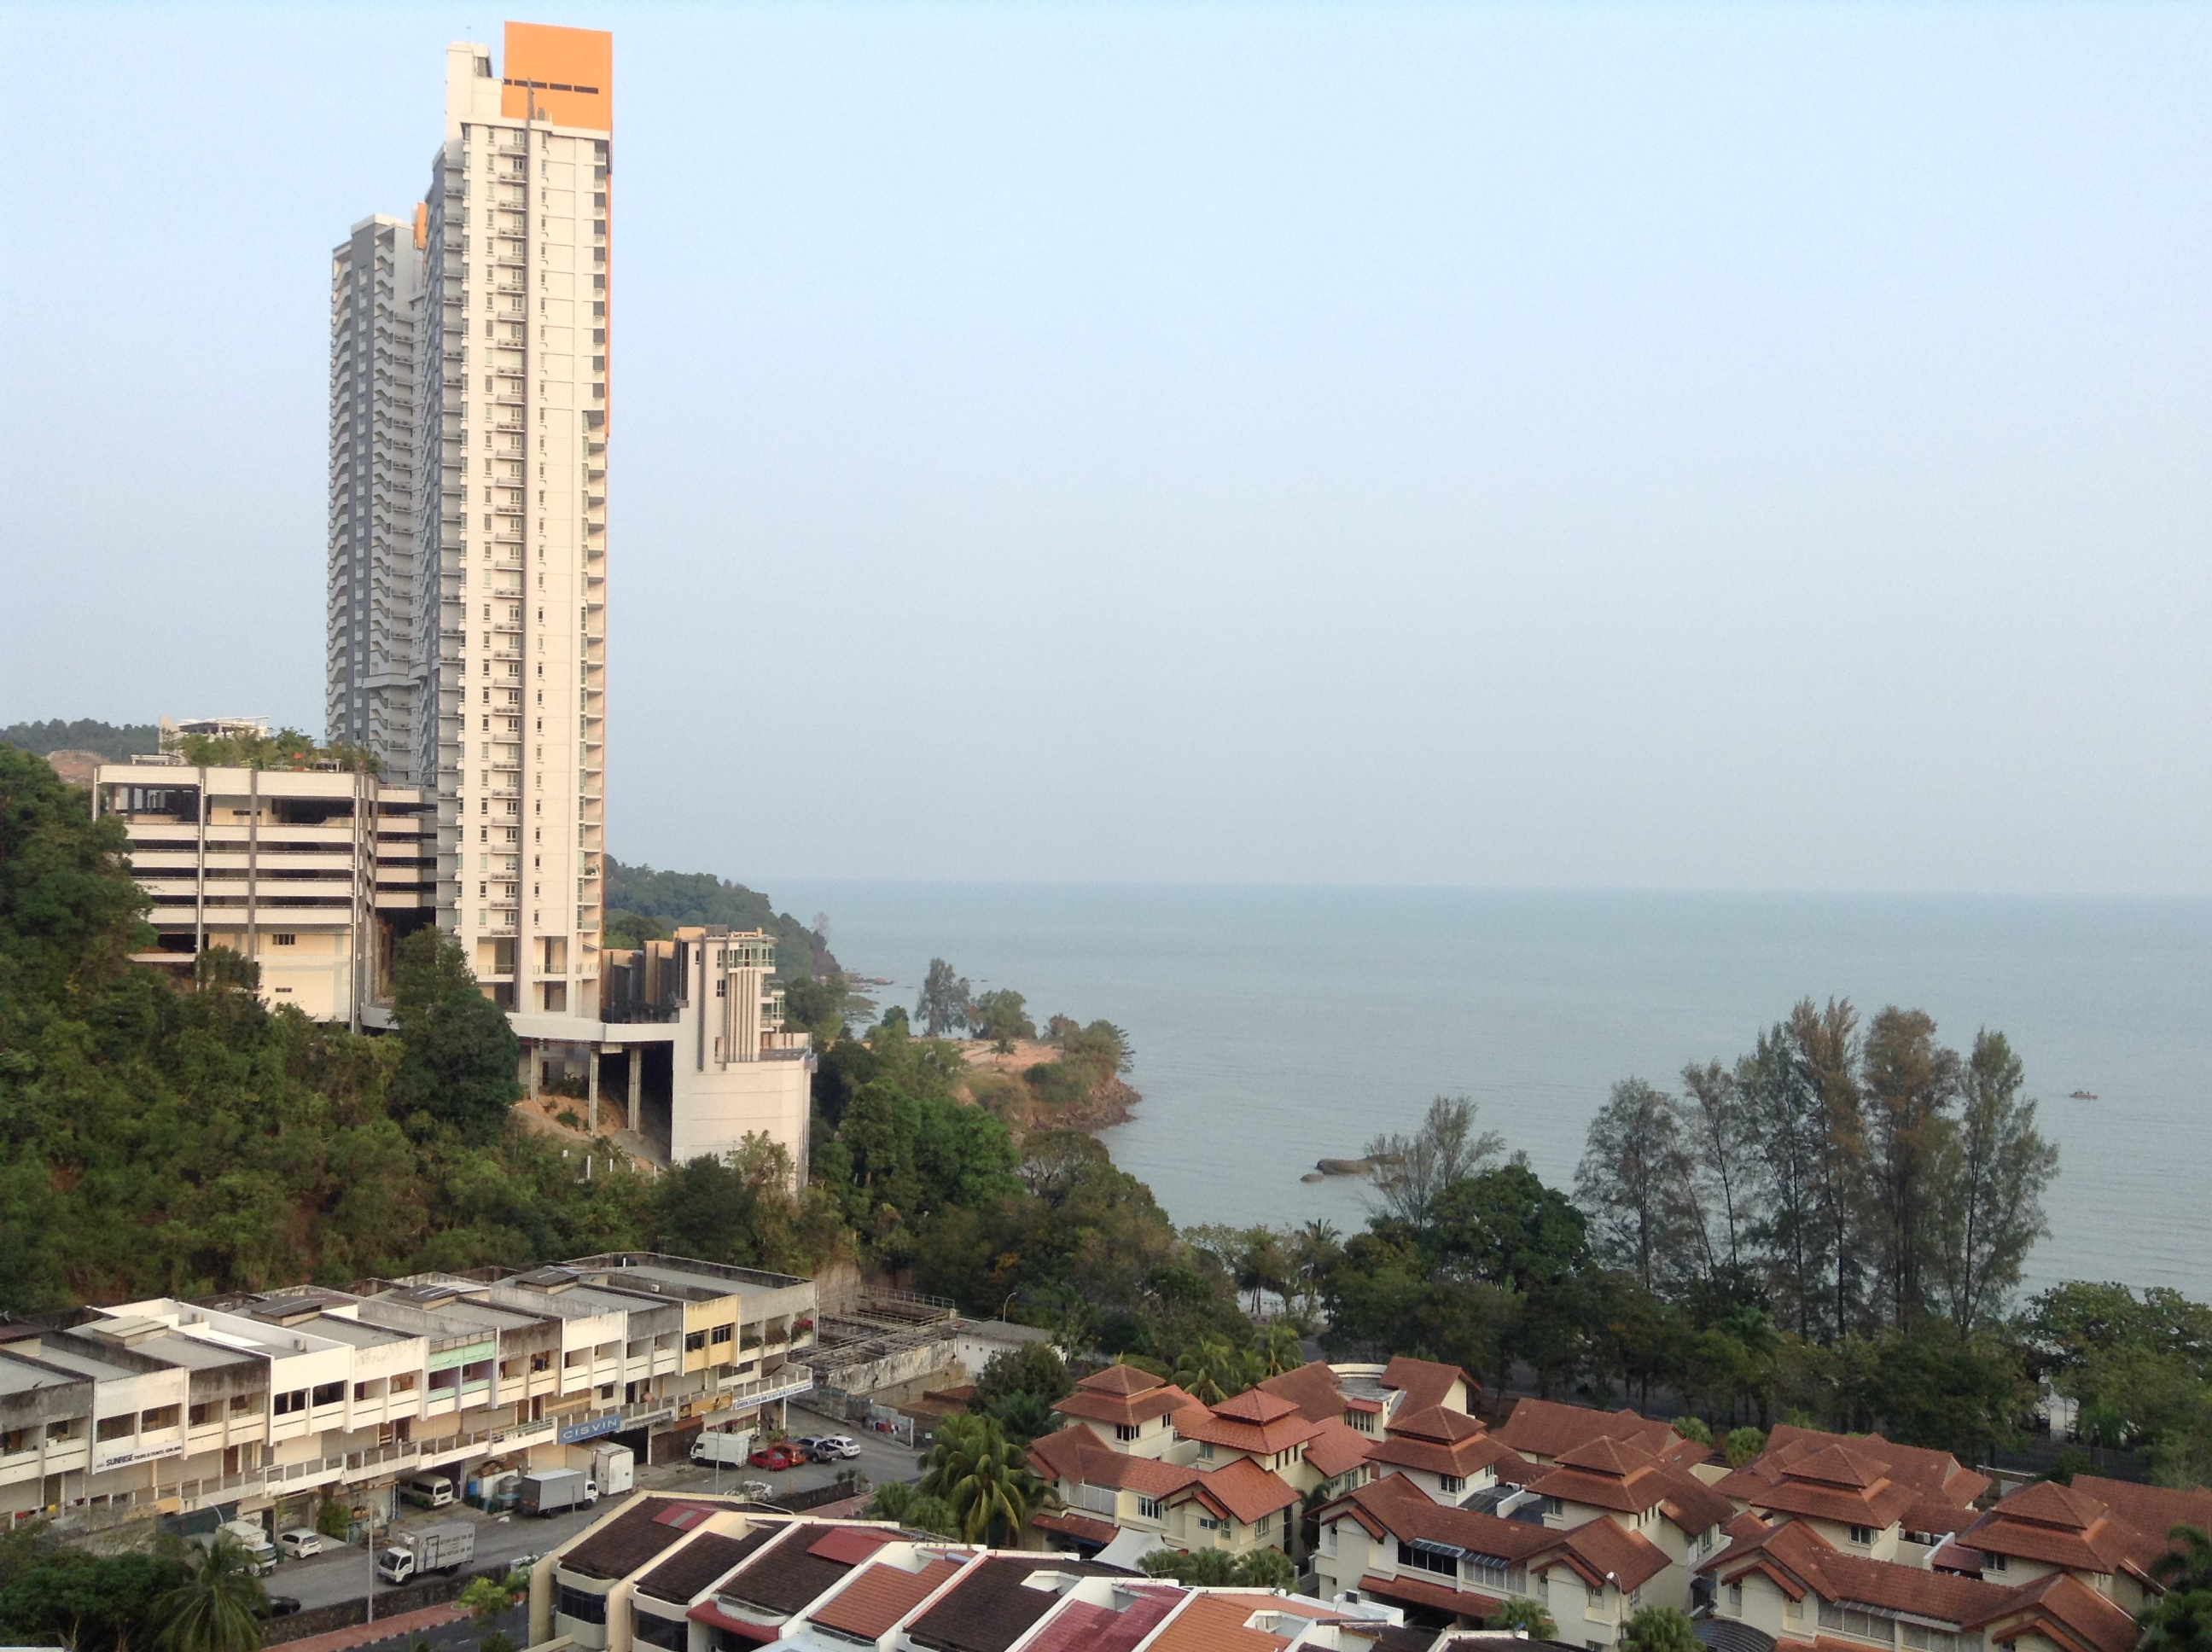 Penang Travel Diary | Our Journey, His Glory...